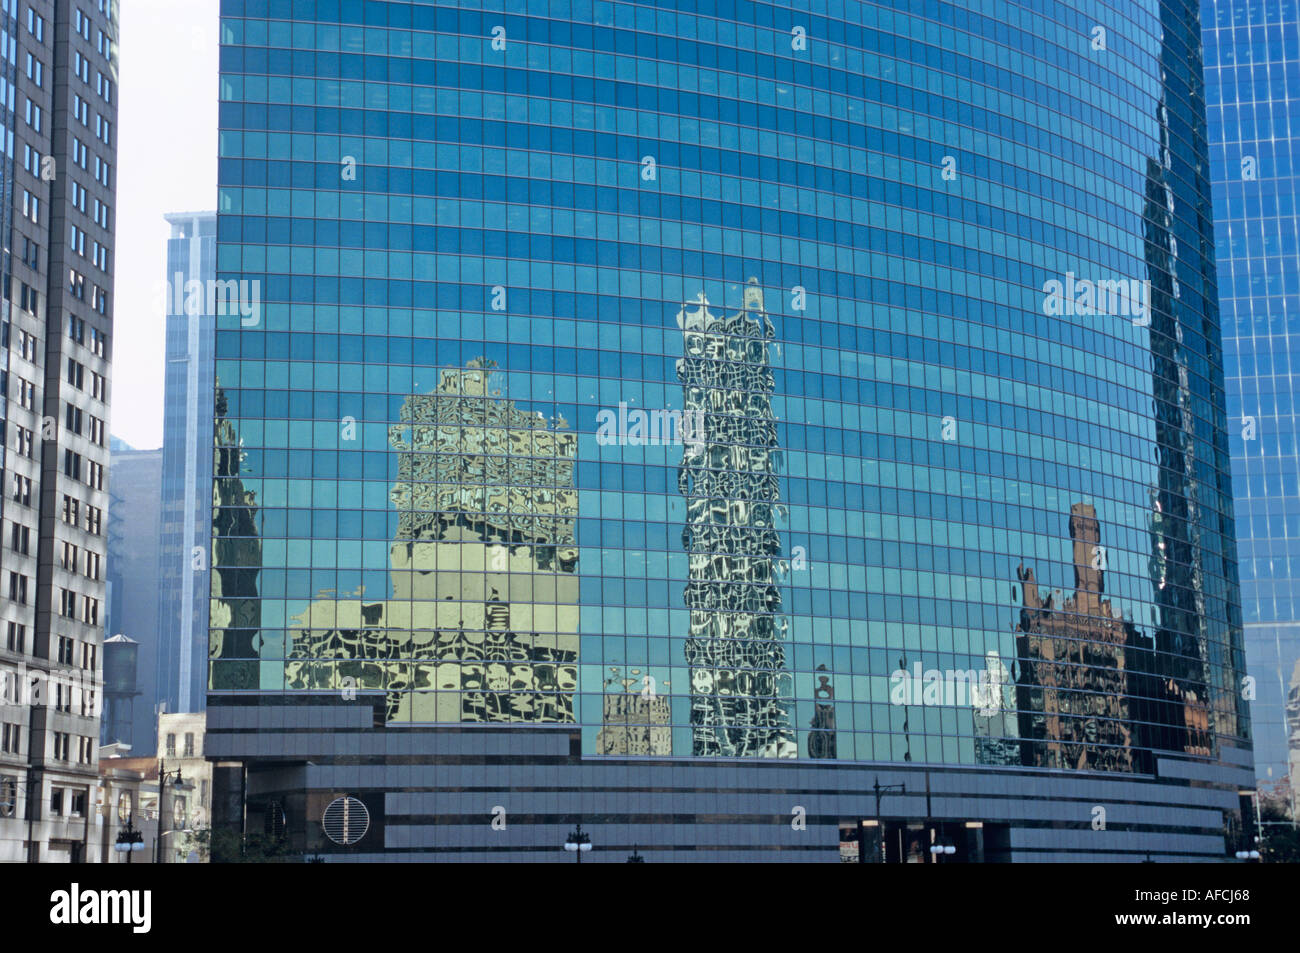 333 West Wacker Drive in Chicago, its curved glass surface enhanced by reflections - Stock Image